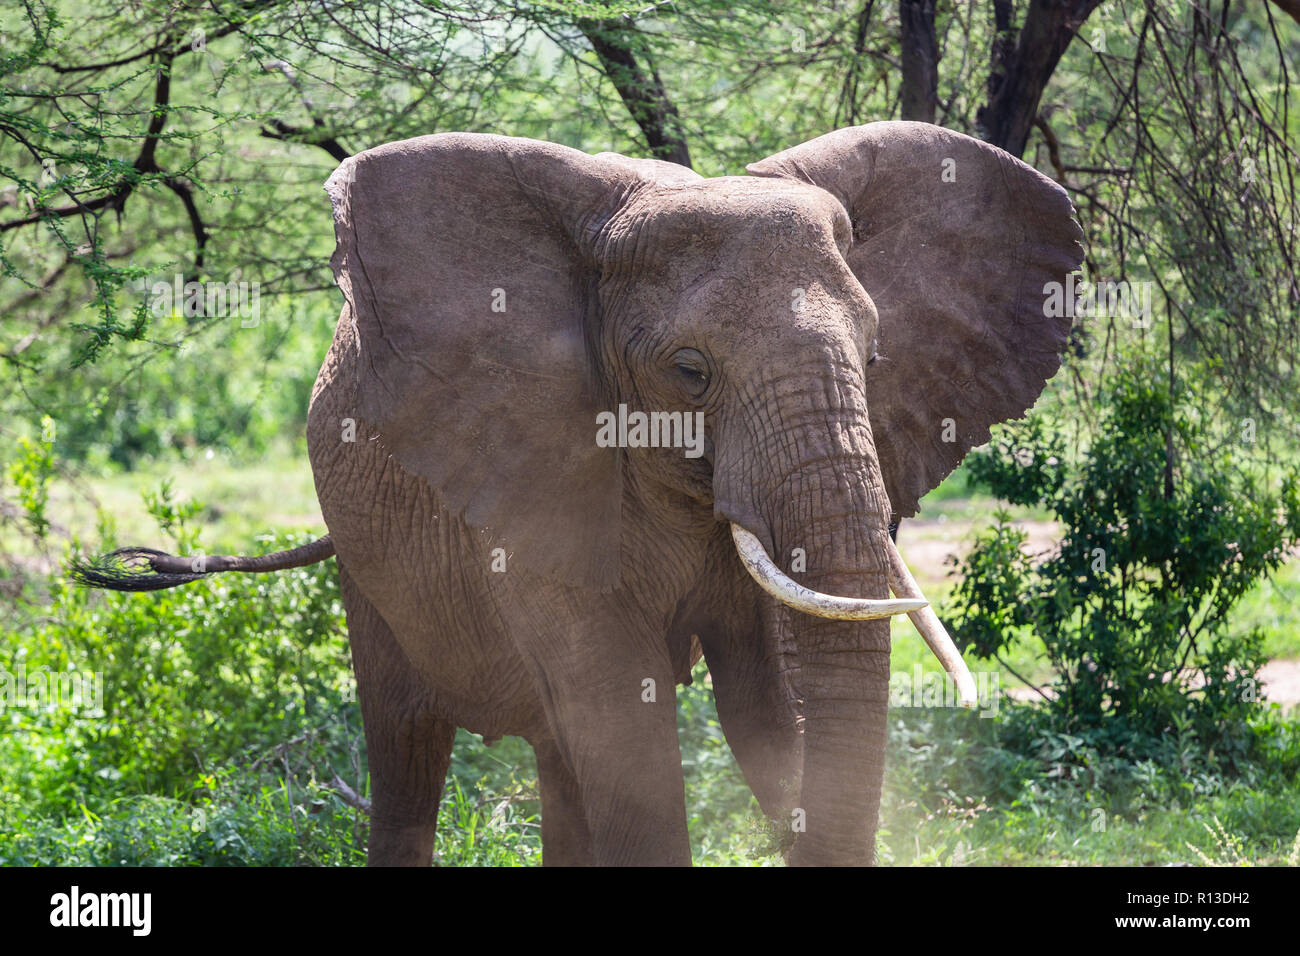 Wild elephant at Lake Manyara National Park. Tanzania. - Stock Image